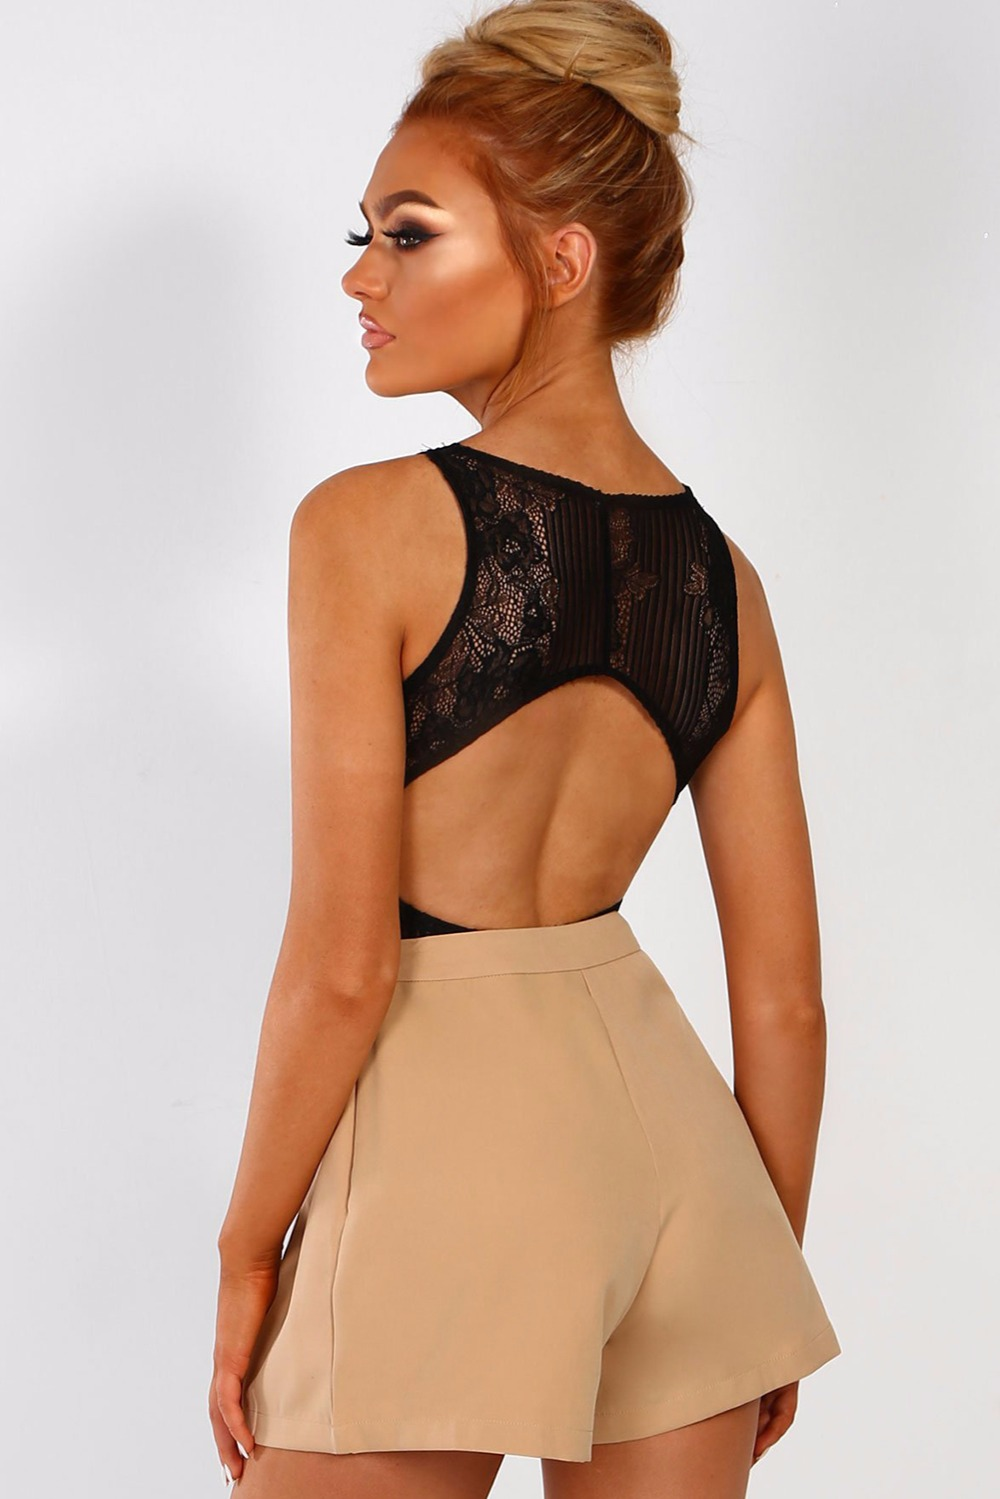 Too-Bad-I-m-Bad-Black-Lace-Open-Back-Bodysuit-LC32392-2-2